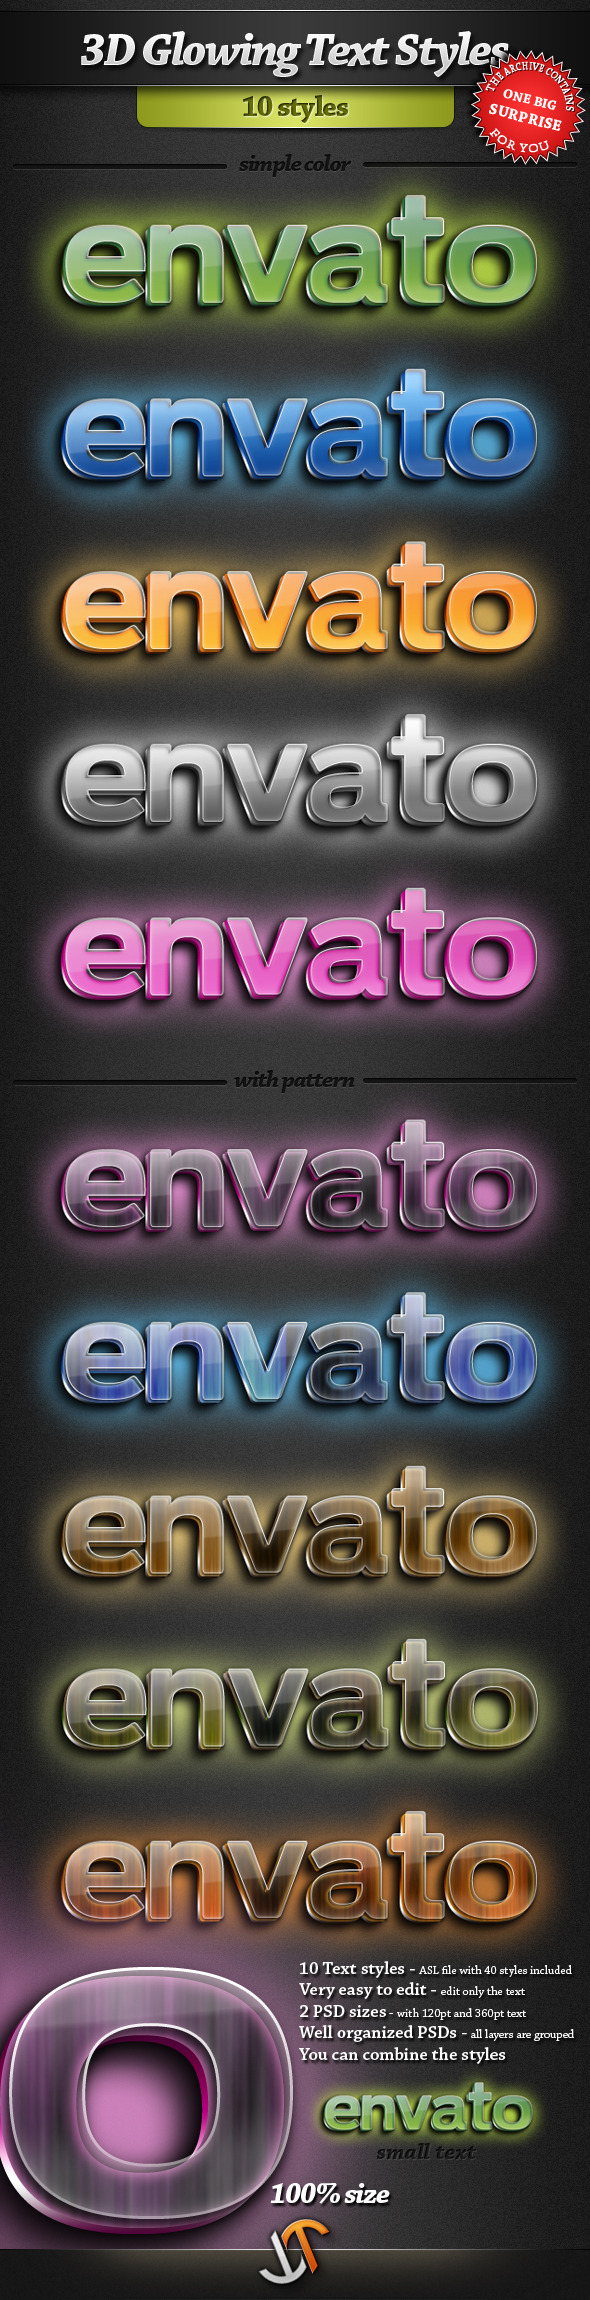 3D Glowing Text Styles - Text Effects Styles